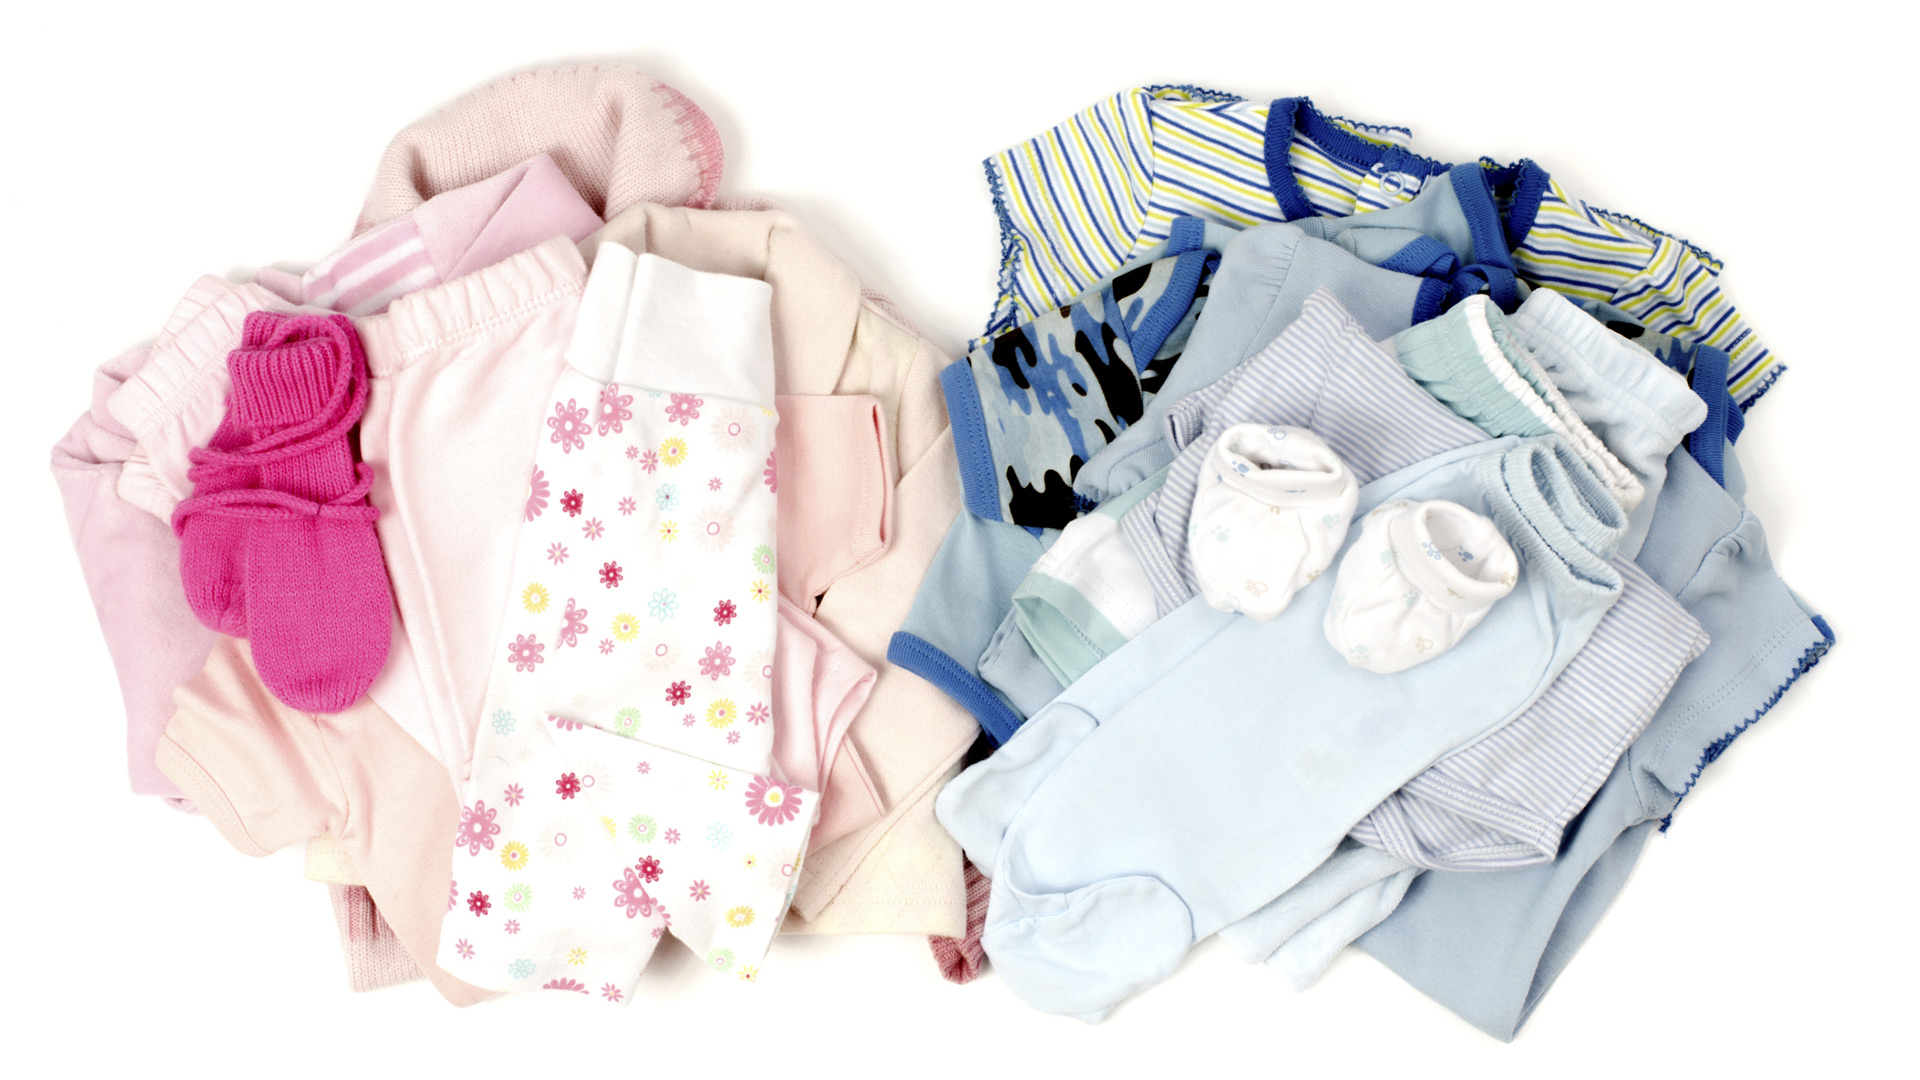 Baby clothes | Sheknows.com